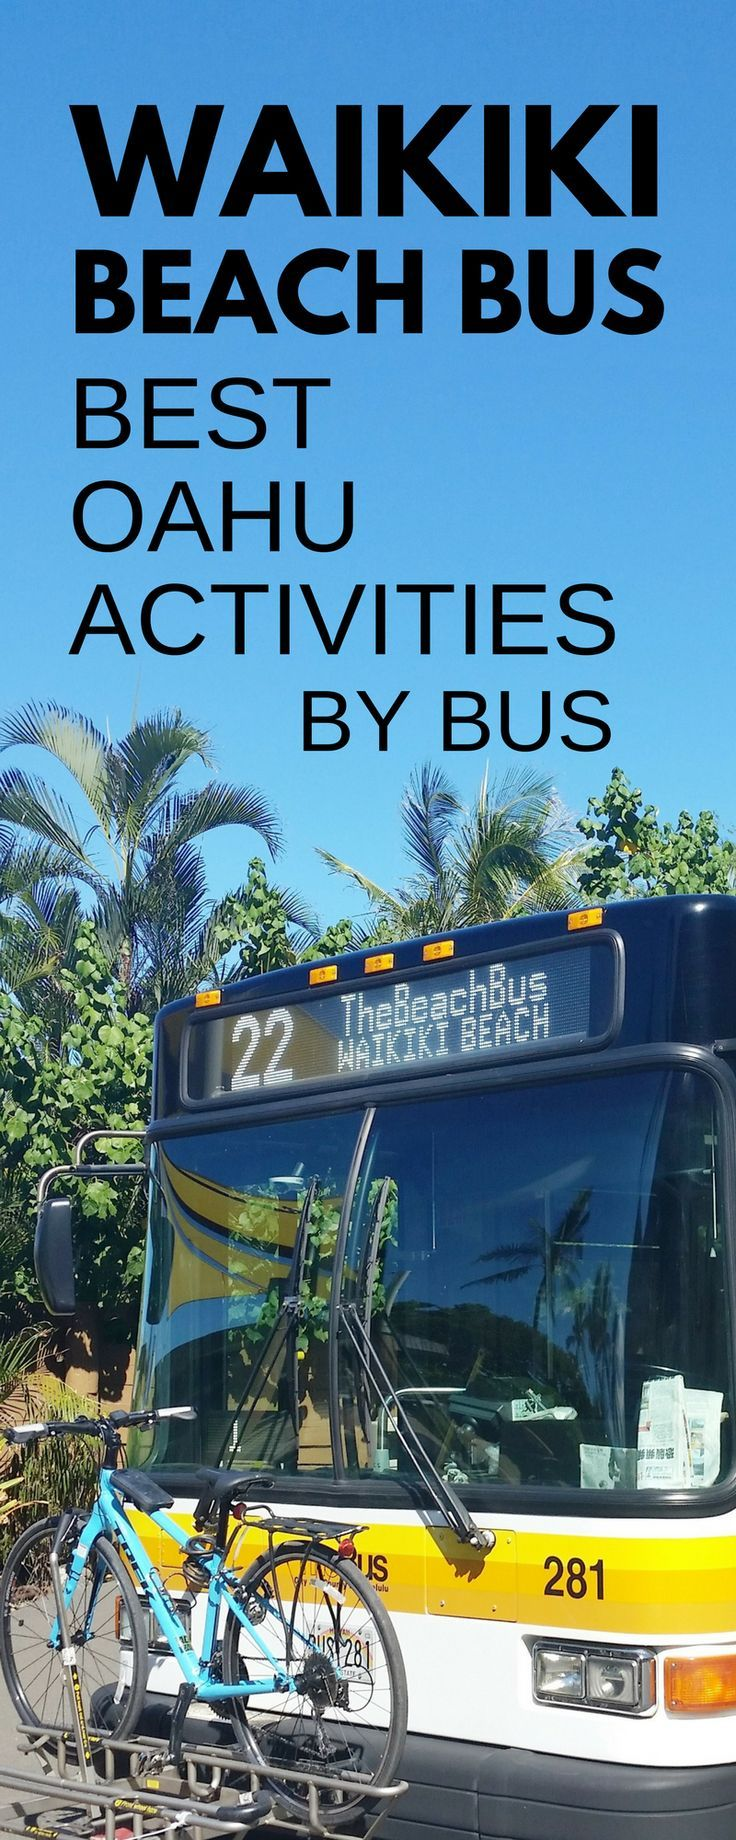 How To Get From Waikiki To Pearl Harbor By Bus